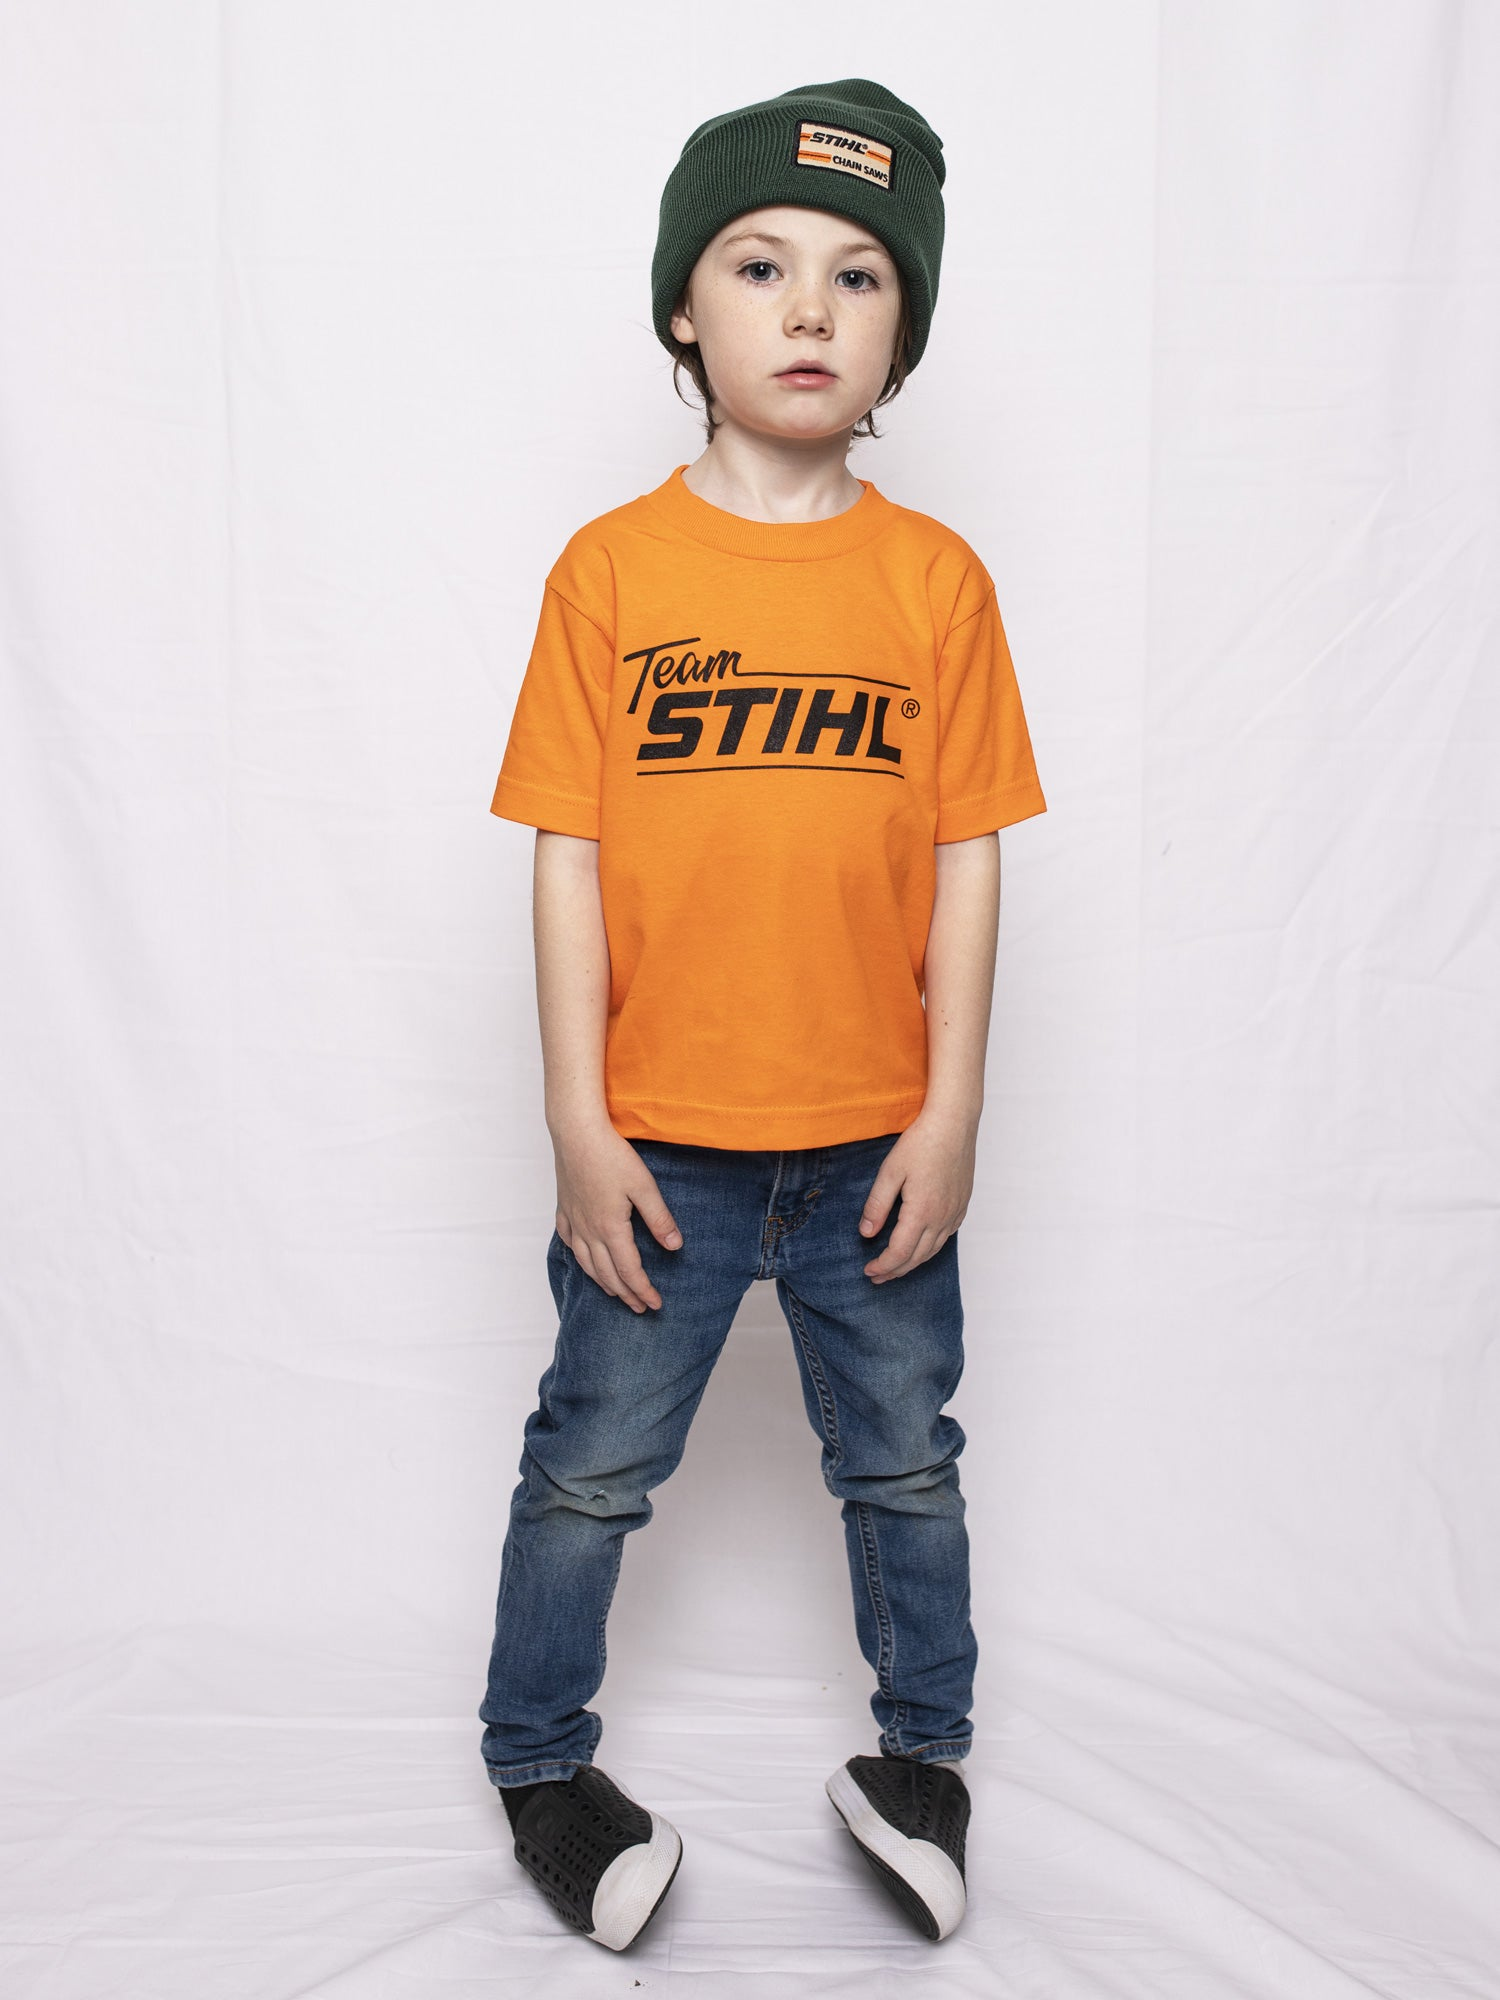 STIHL Toddler T-Shirt